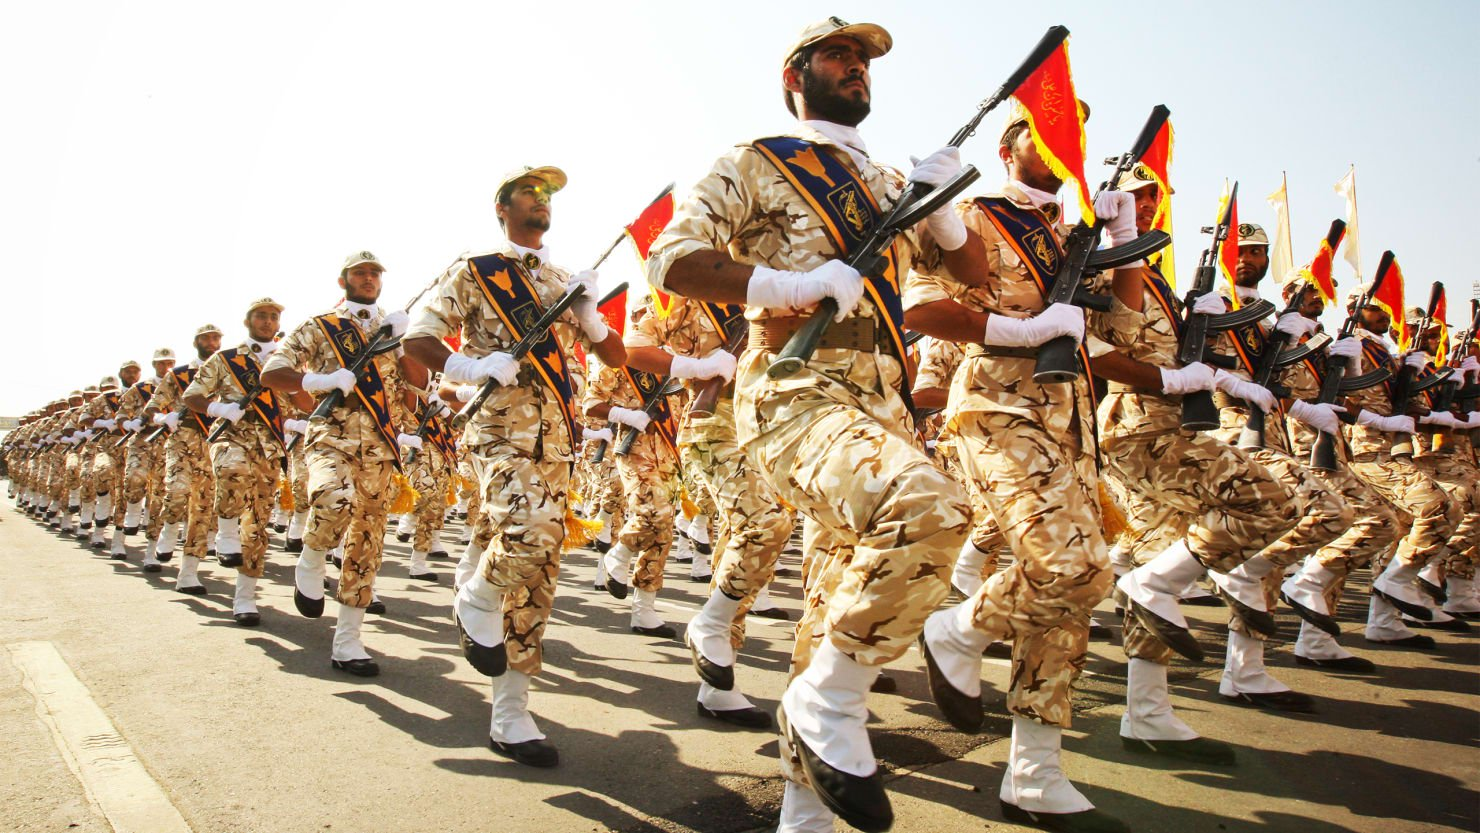 Iran's Revolutionary Guards